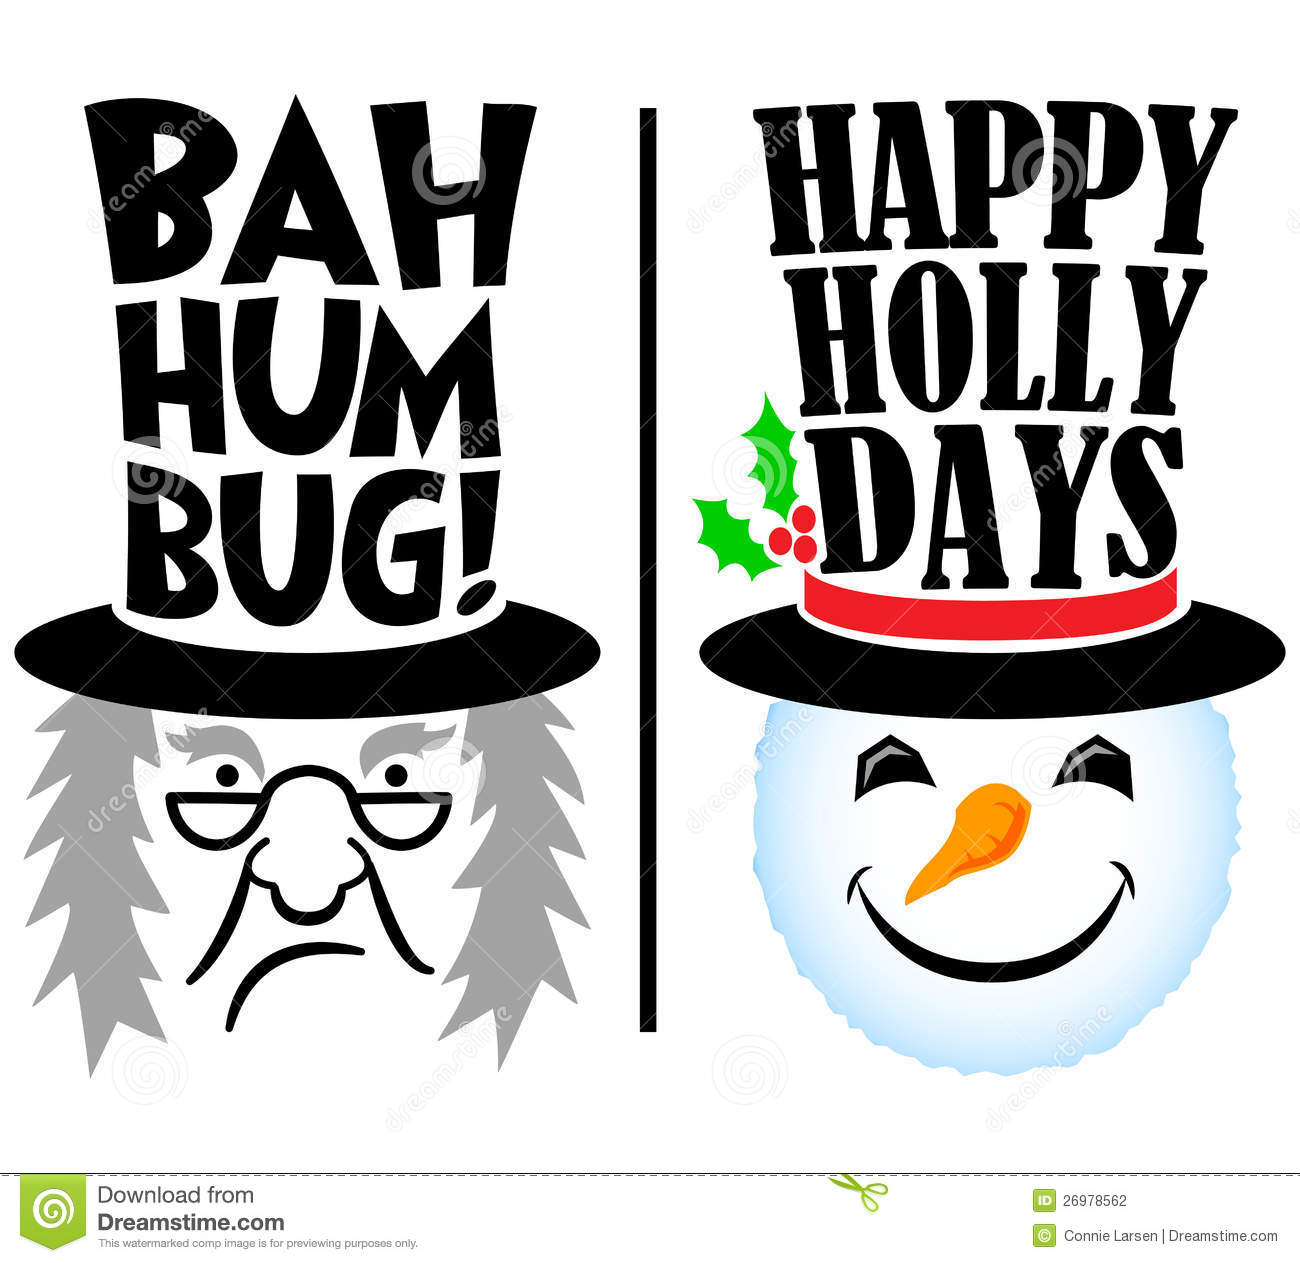 Cartoon Christmas holiday characters, grumpy scrooge and happy snowman ...